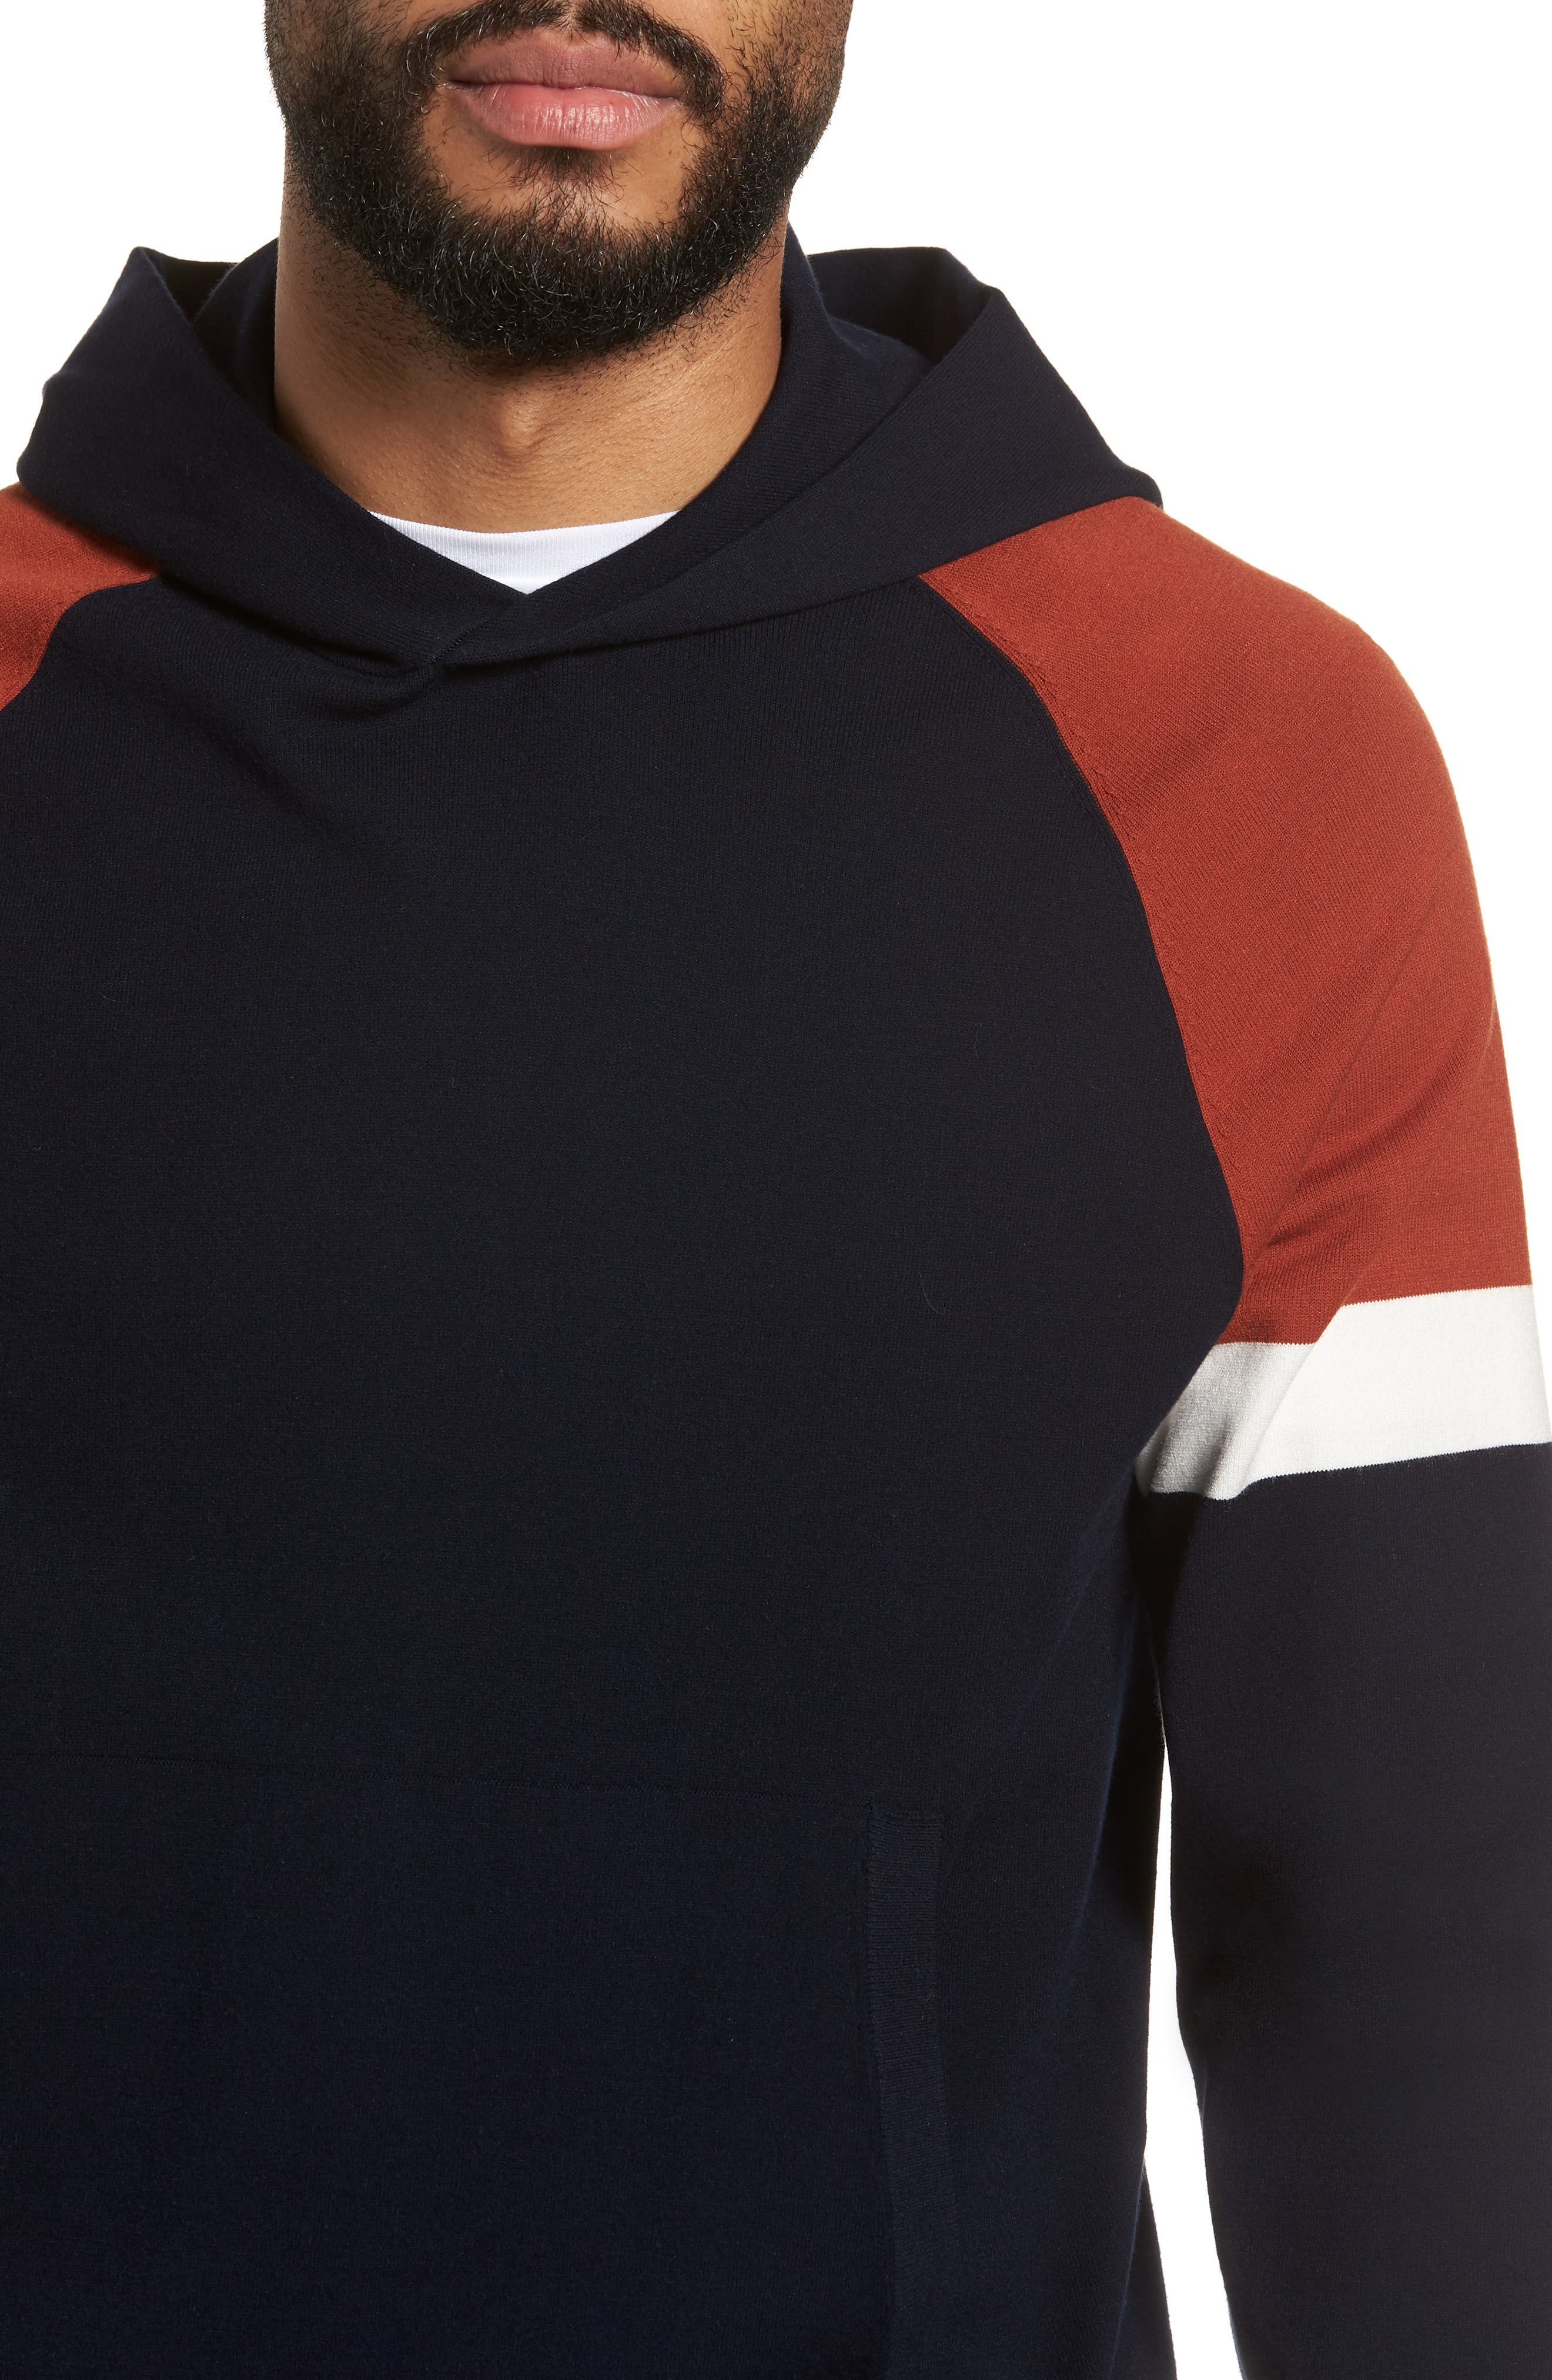 Colorblocked Pullover Hoodie,                             Alternate thumbnail 8, color,